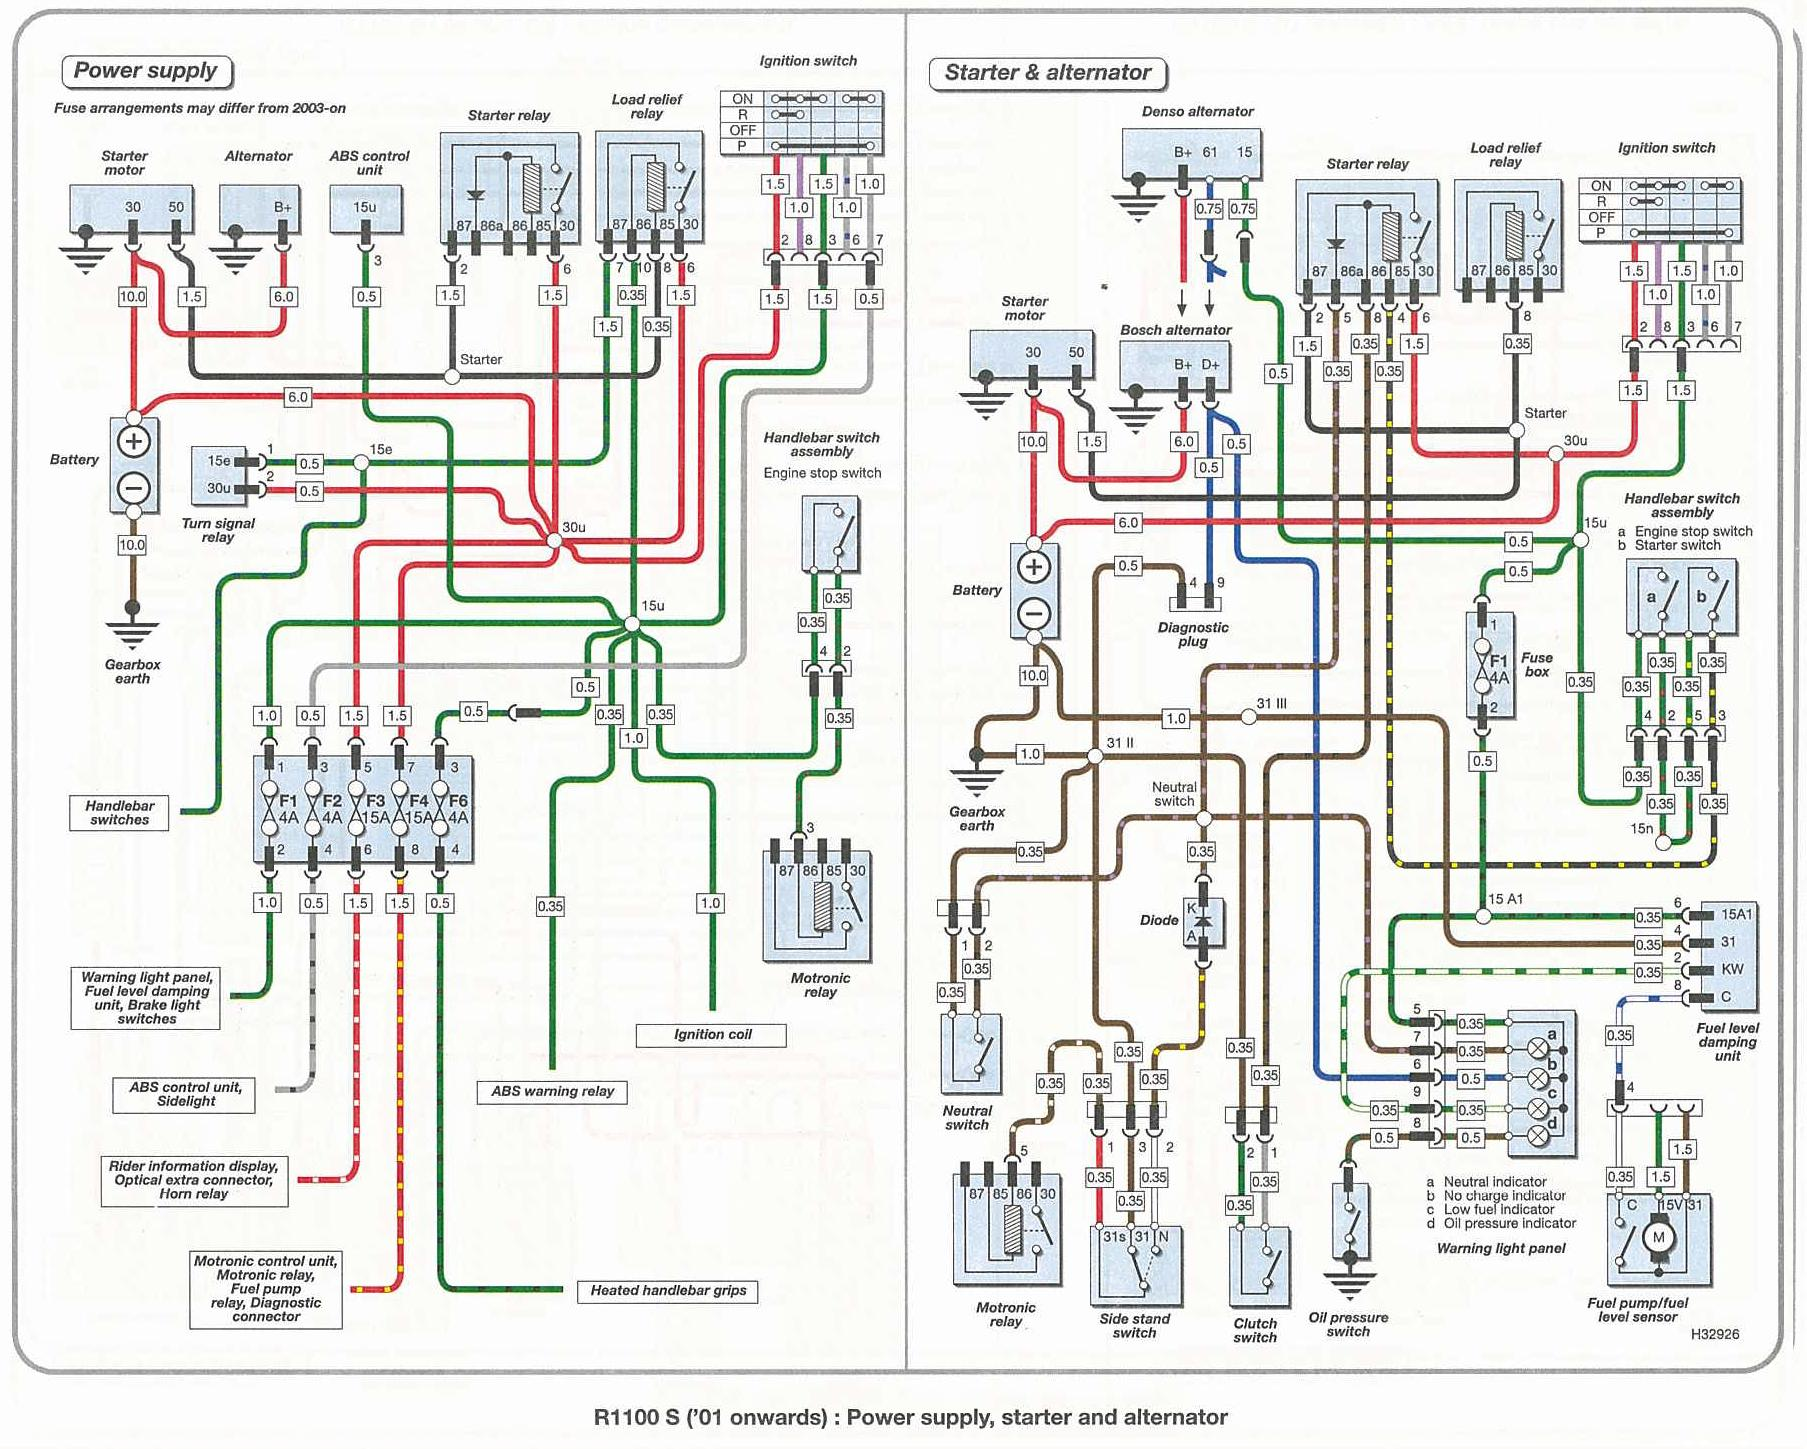 wiring05 bmw r1100s wiring diagrams r1100rt wiring diagram at crackthecode.co